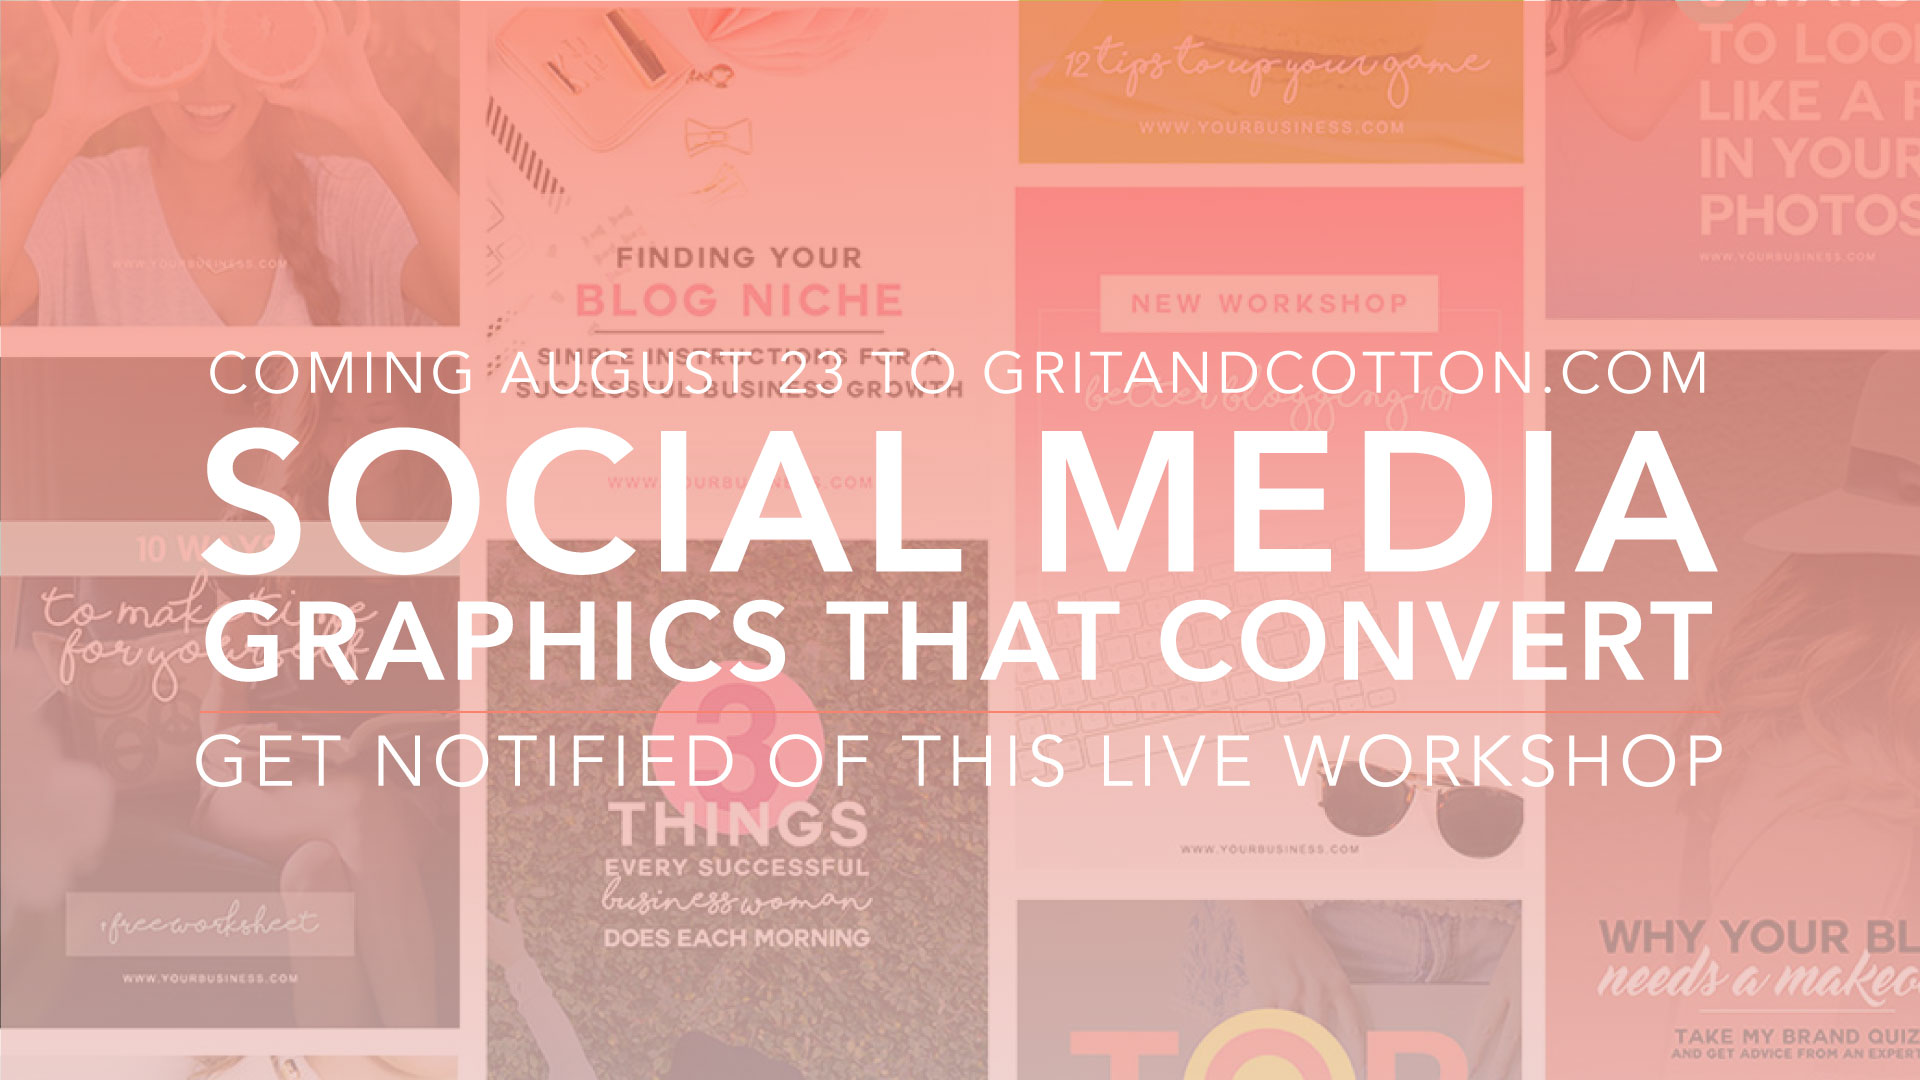 Social Media Graphics that Convert